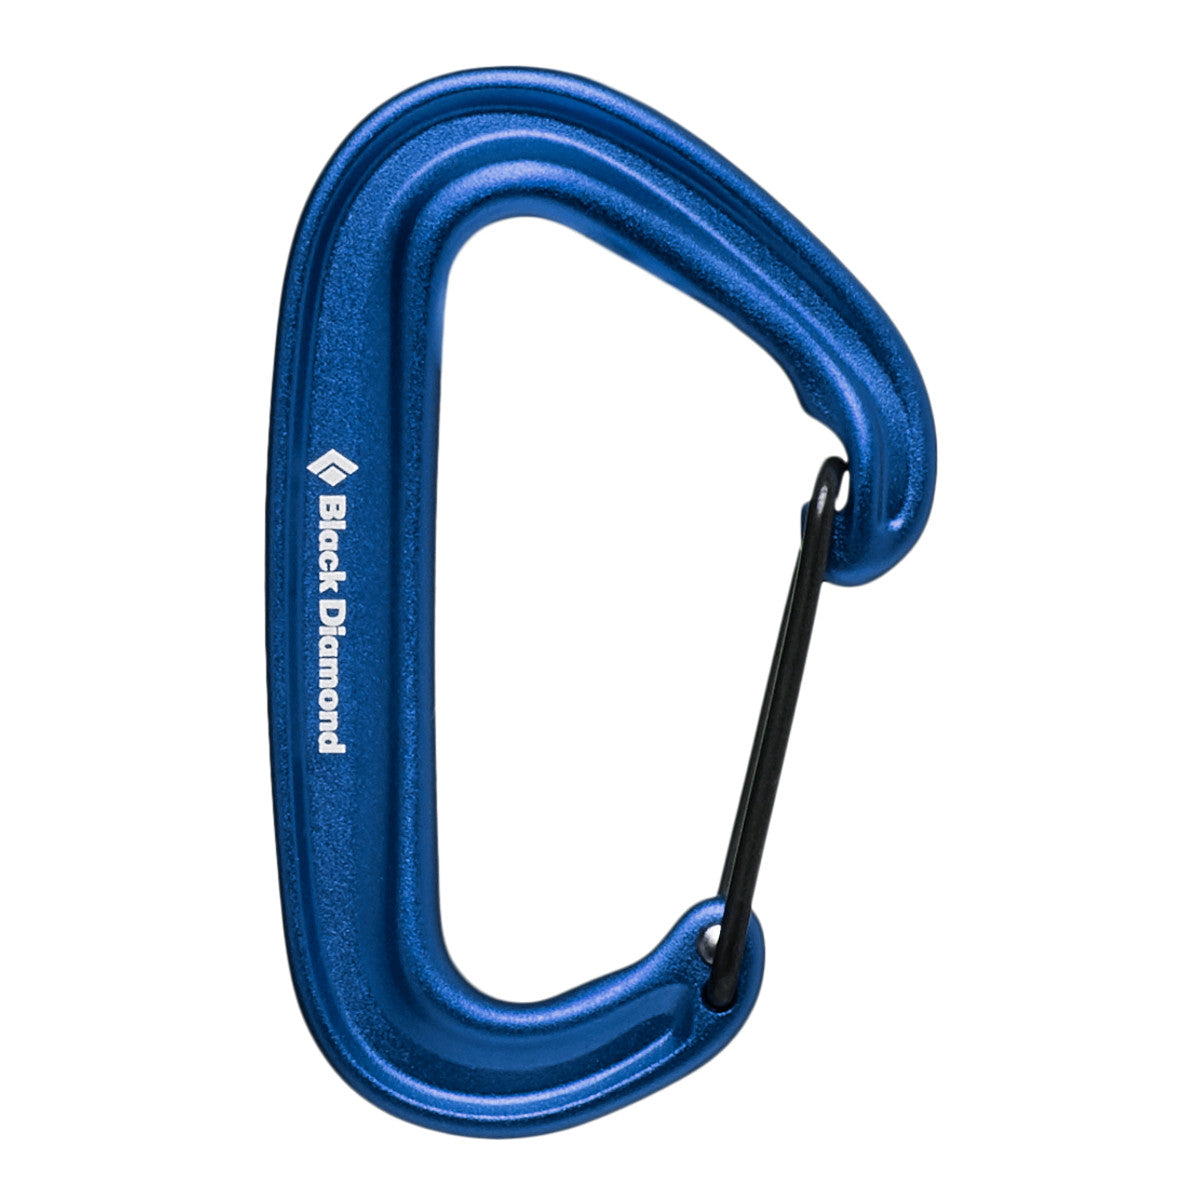 Black Diamond Miniwire Carabiner in Blue